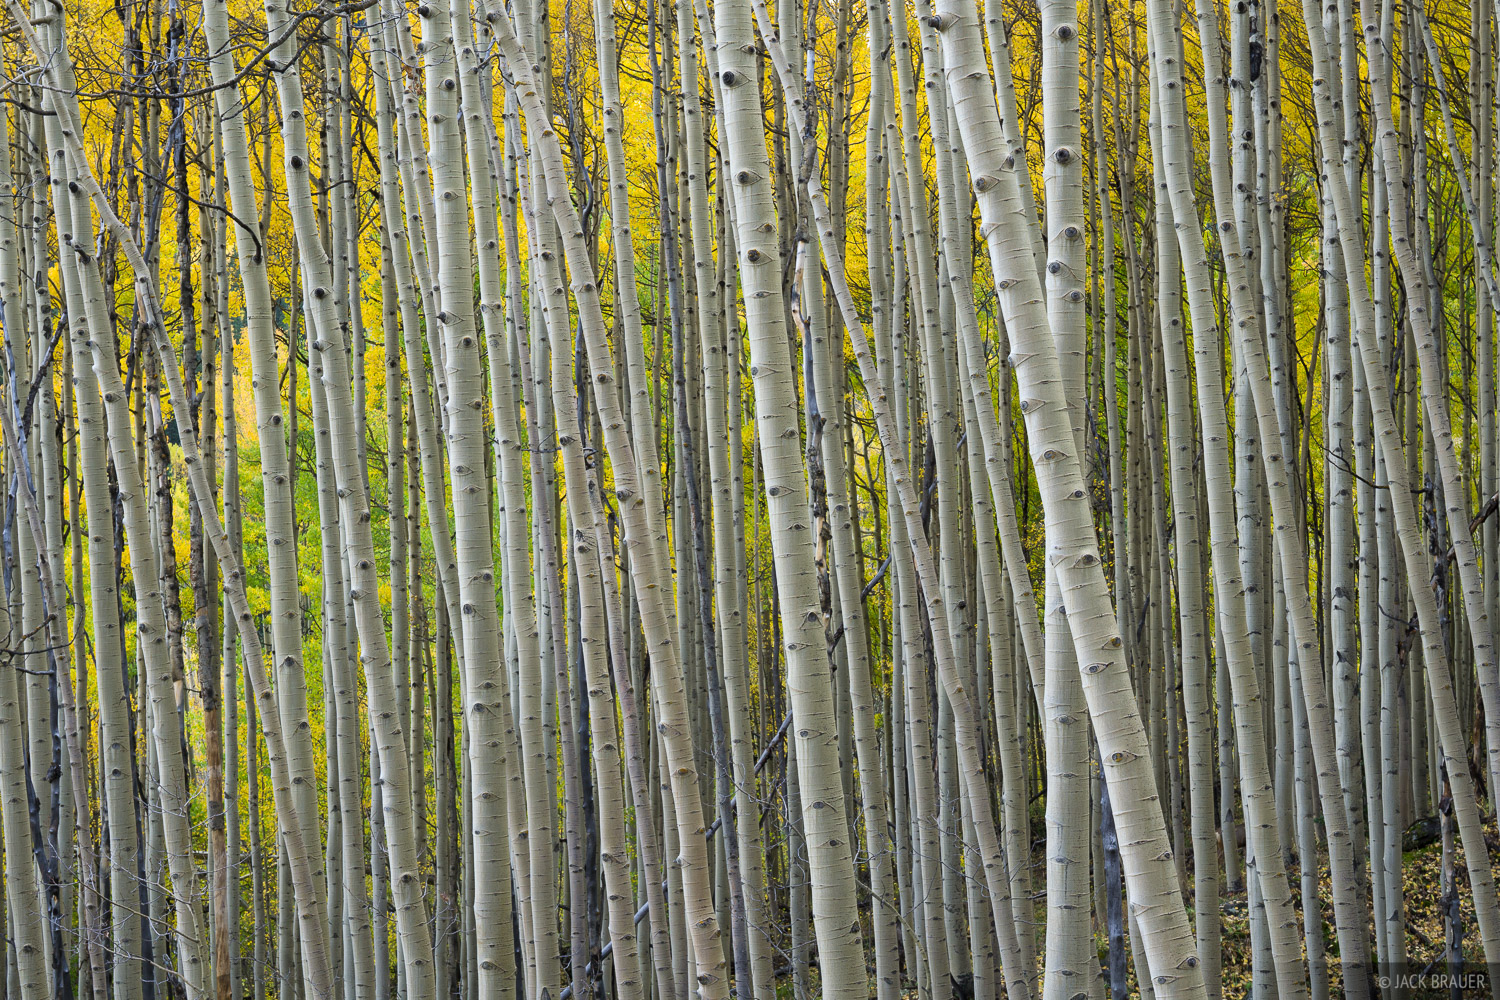 Colorado,San Juan Mountains, aspens, photo